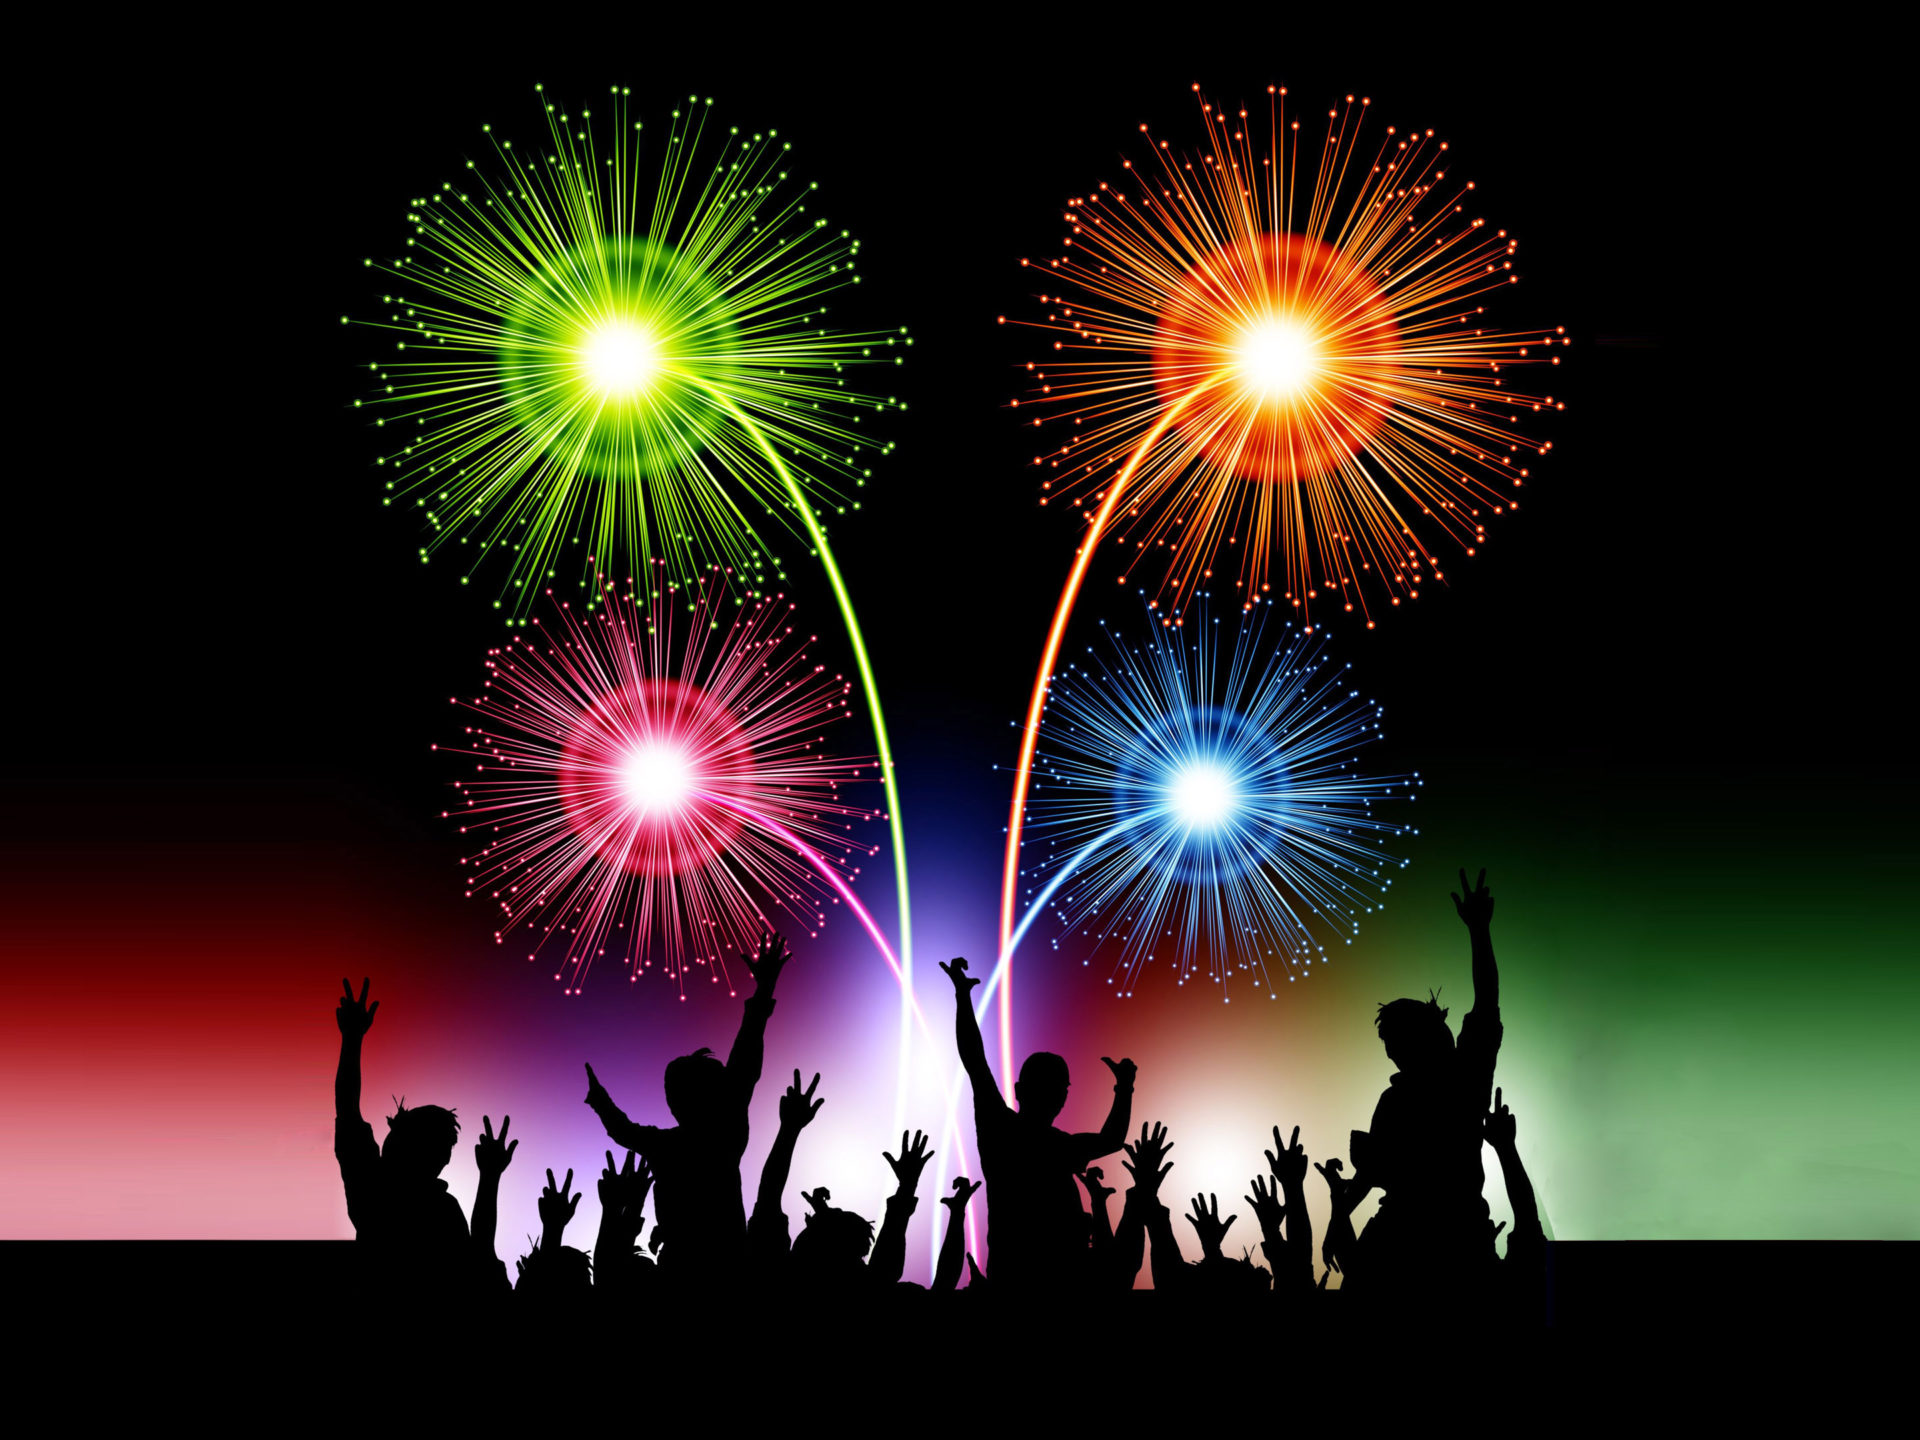 Happy New Year 2020 Celebration Animated 3d Fireworks Desktop Hd 1920x1440